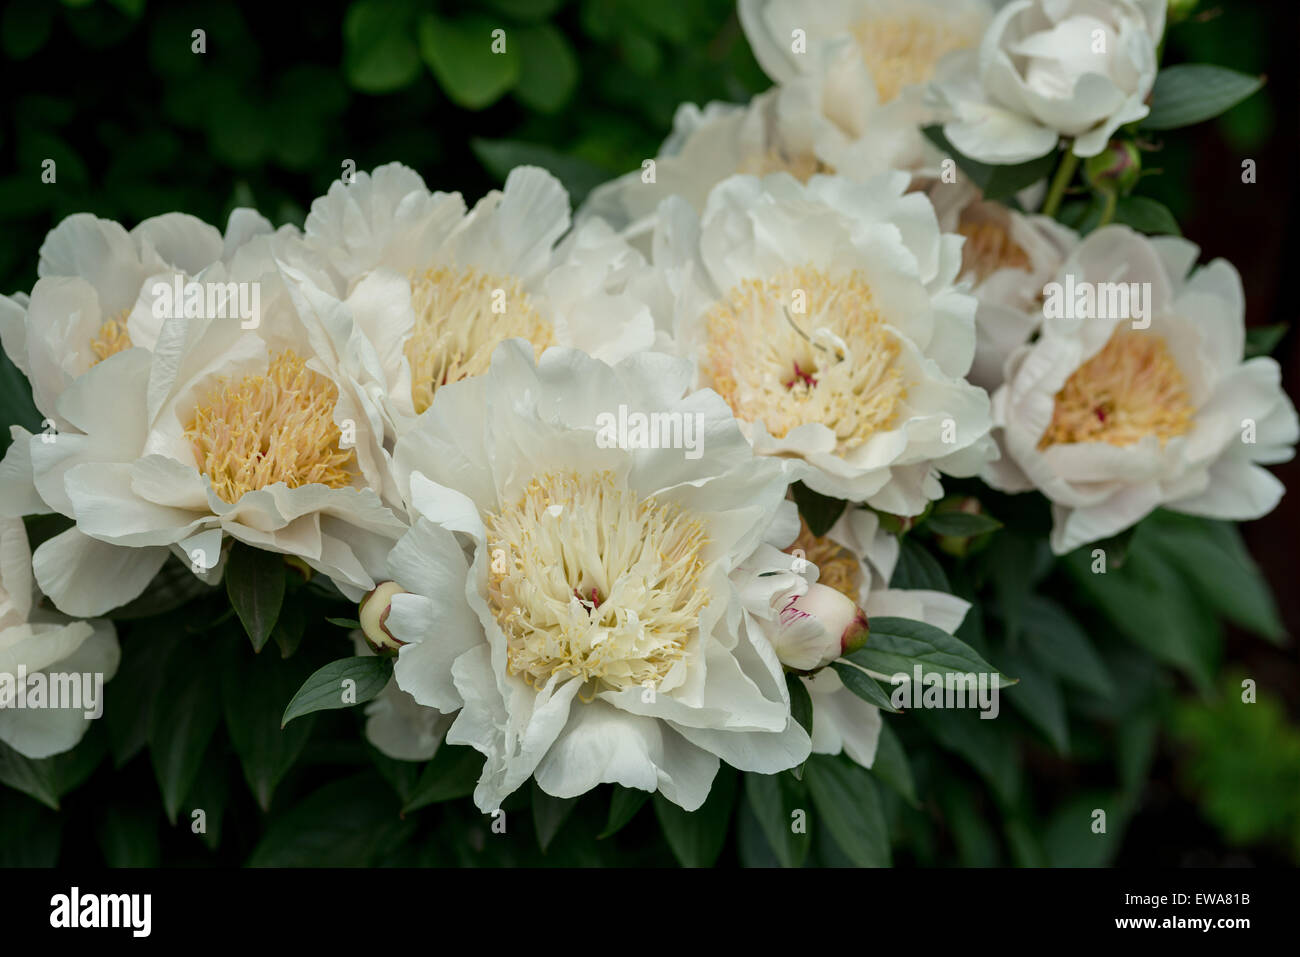 Cluster of white rich blooming peonies peonia - Stock Image